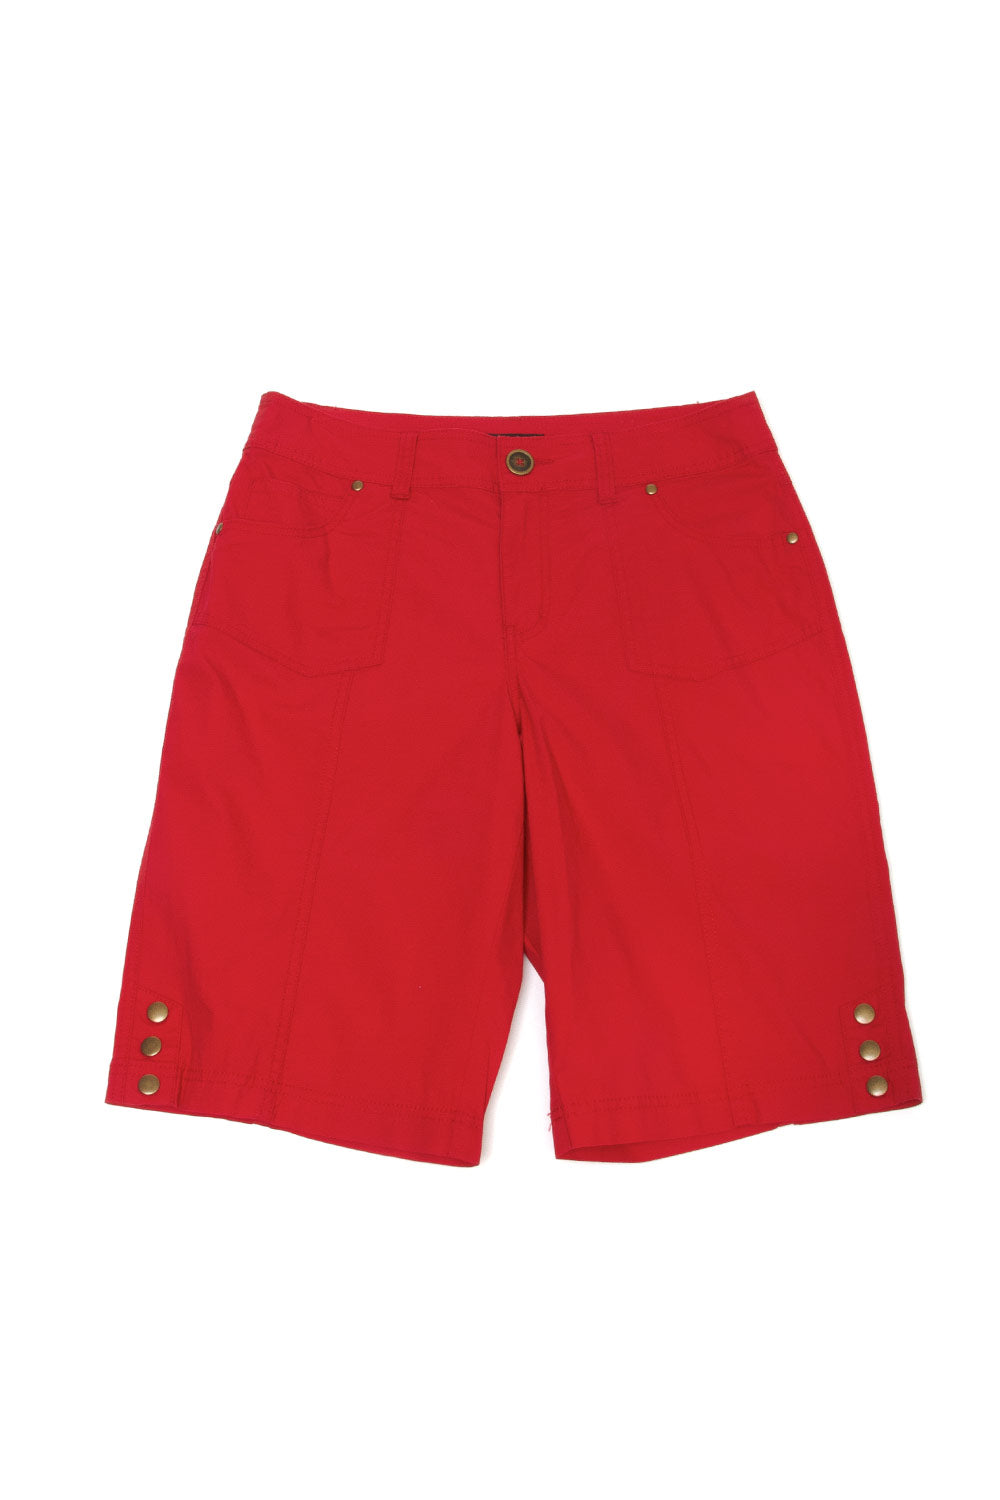 Type 3 Rodeo Red Shorts